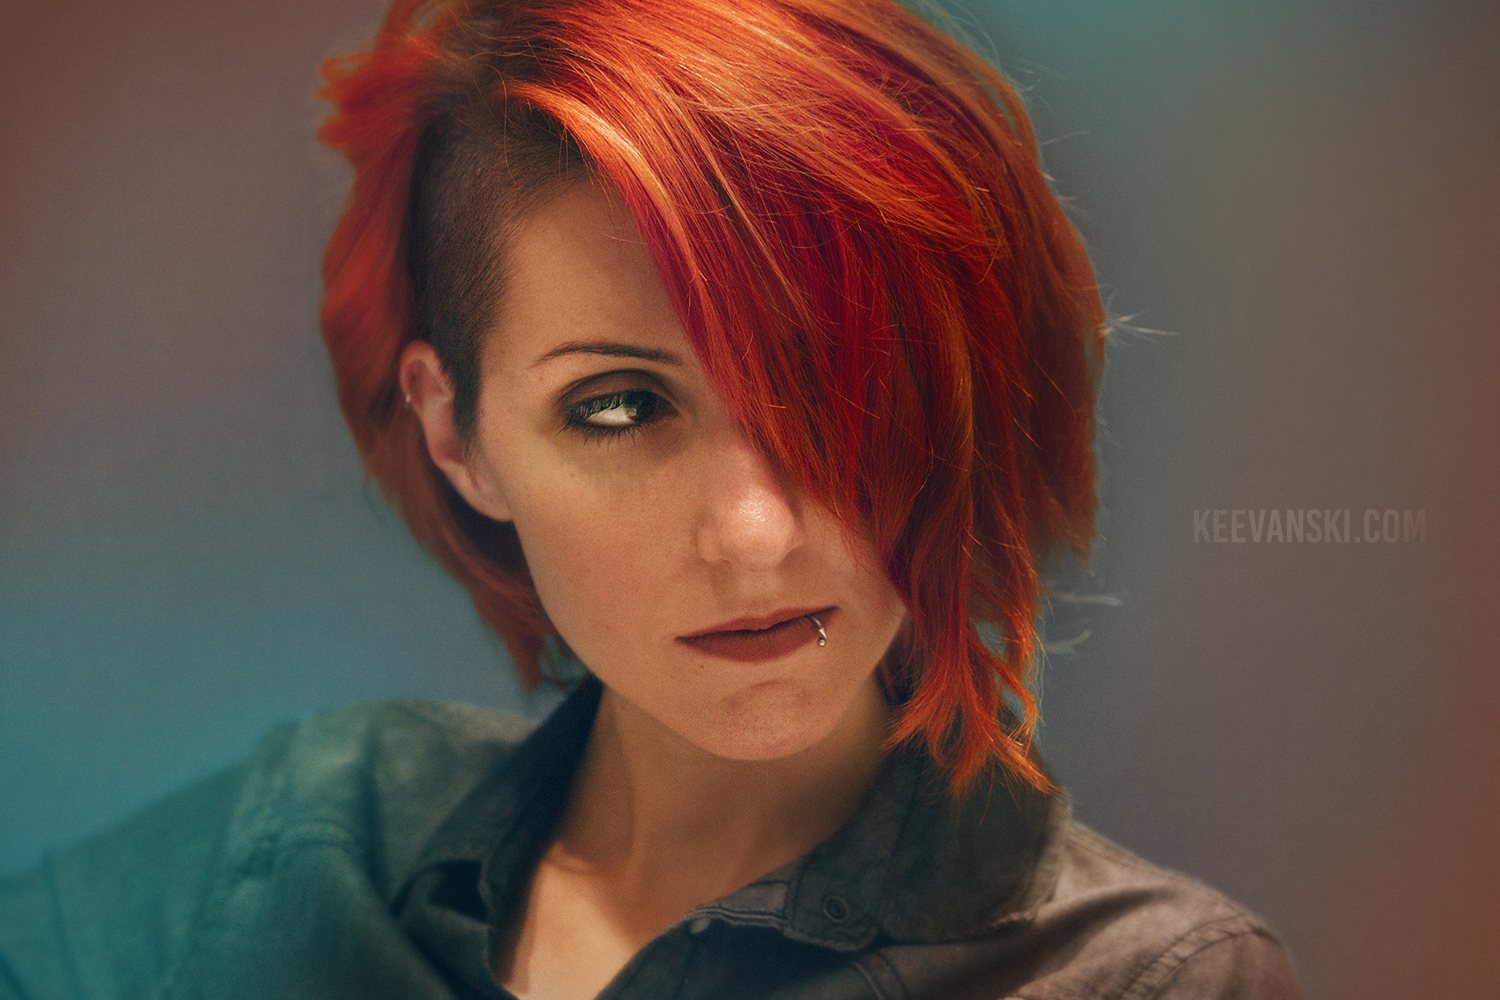 red-hair-sidecut-by-keevanski